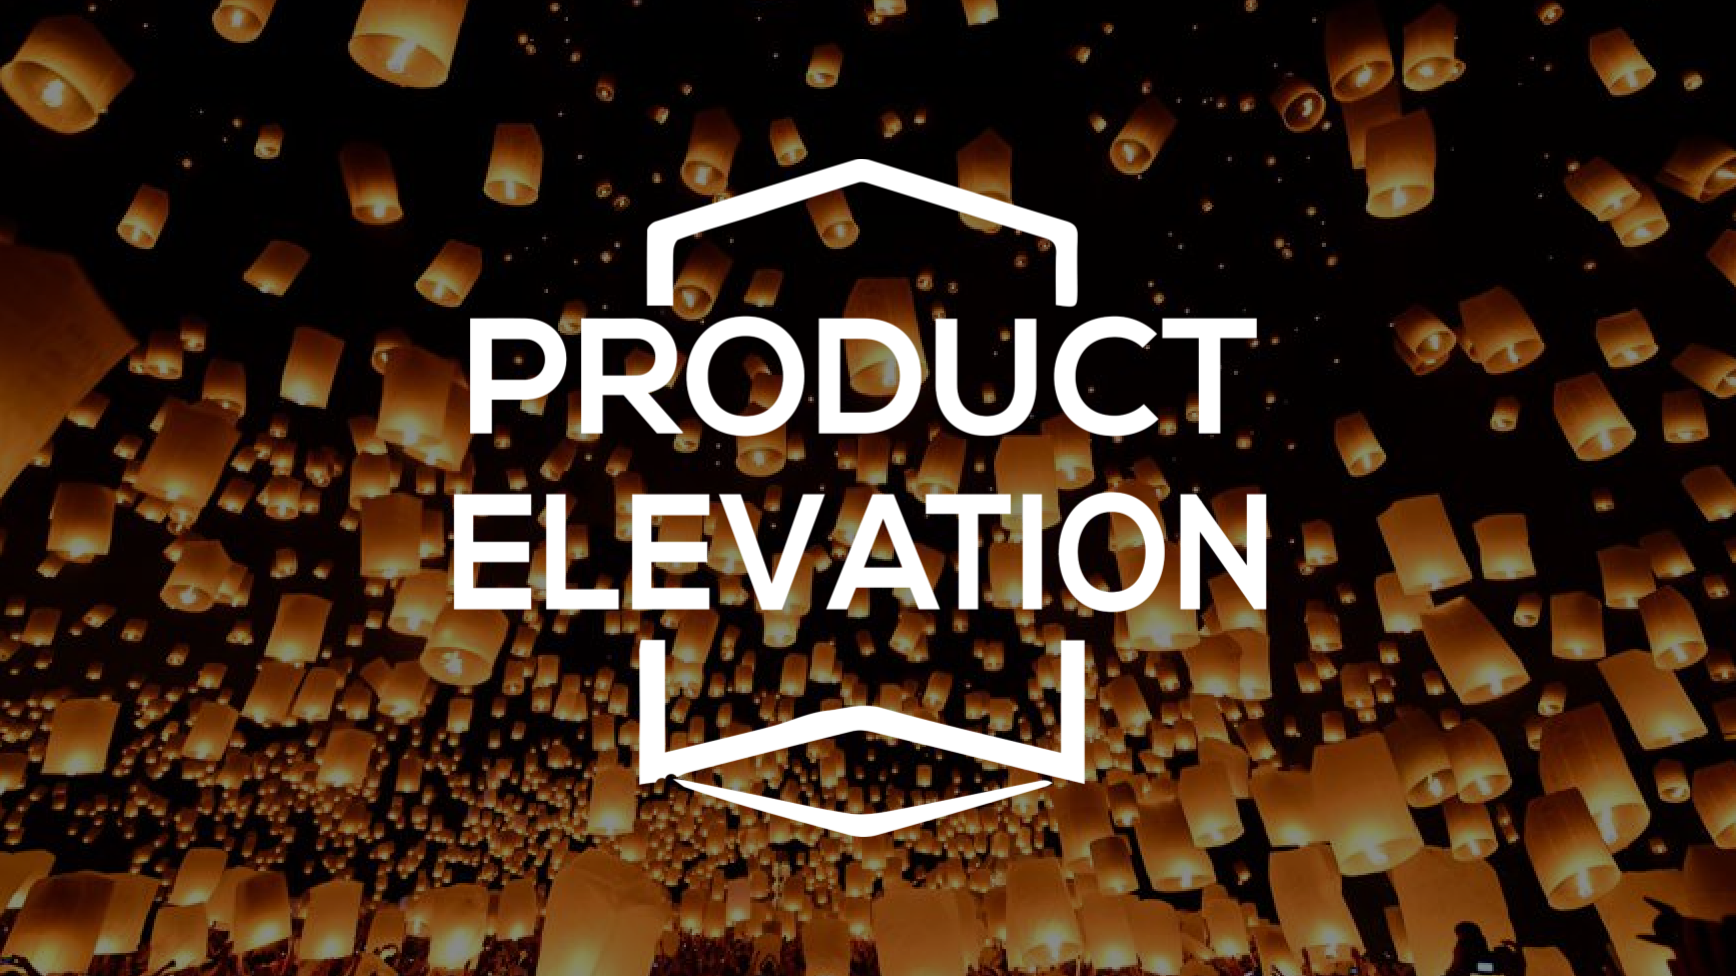 Product Elevation